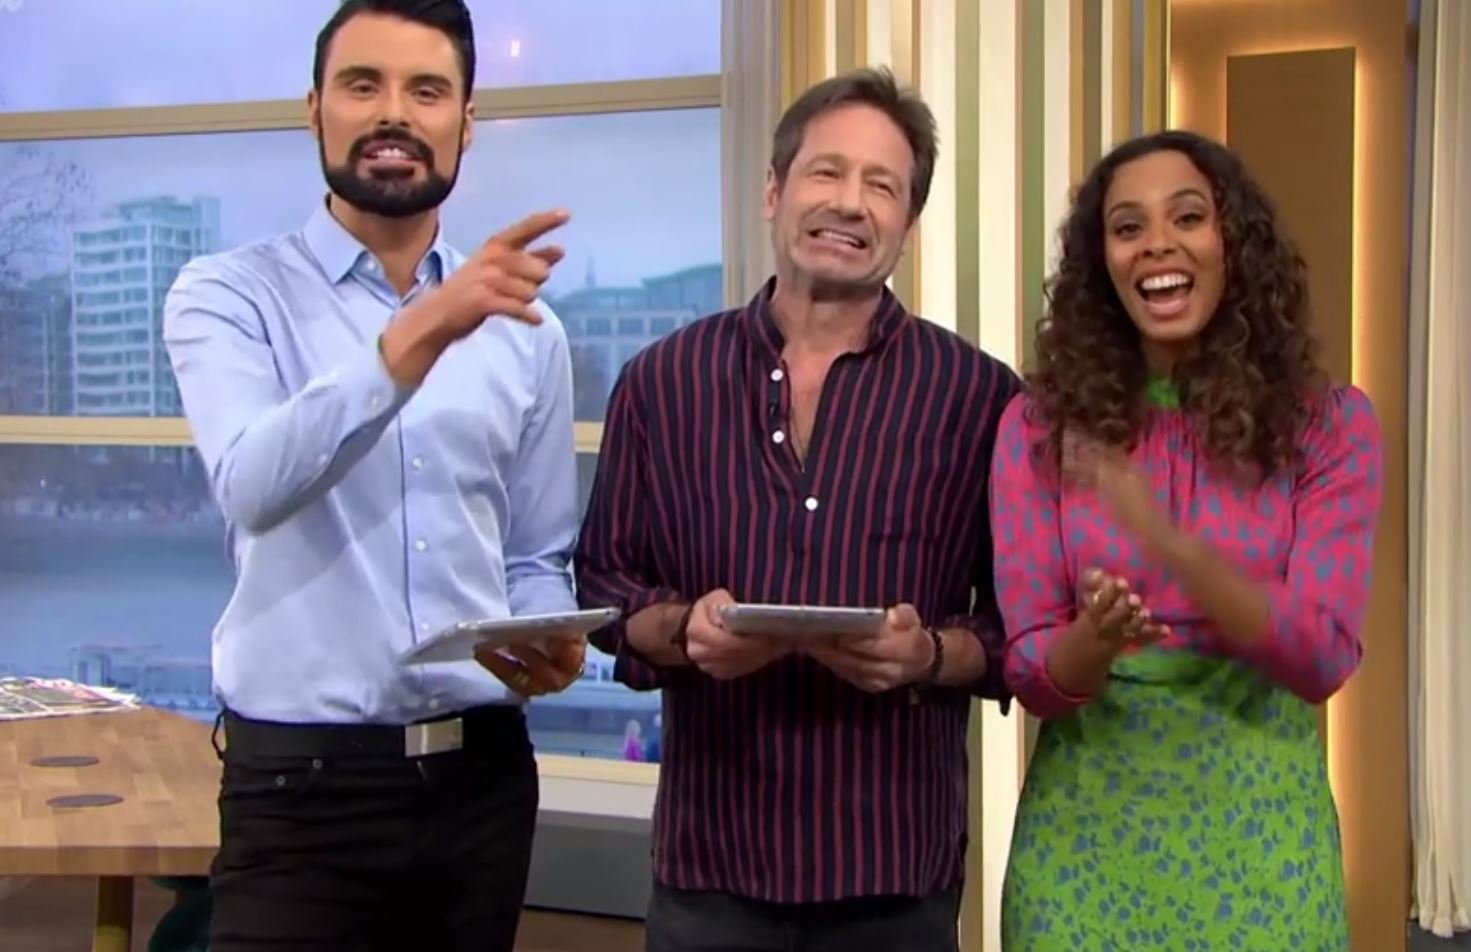 Picture: ITV New career path for David Duchovny as he joins in hosting with Rylan and Rochelle